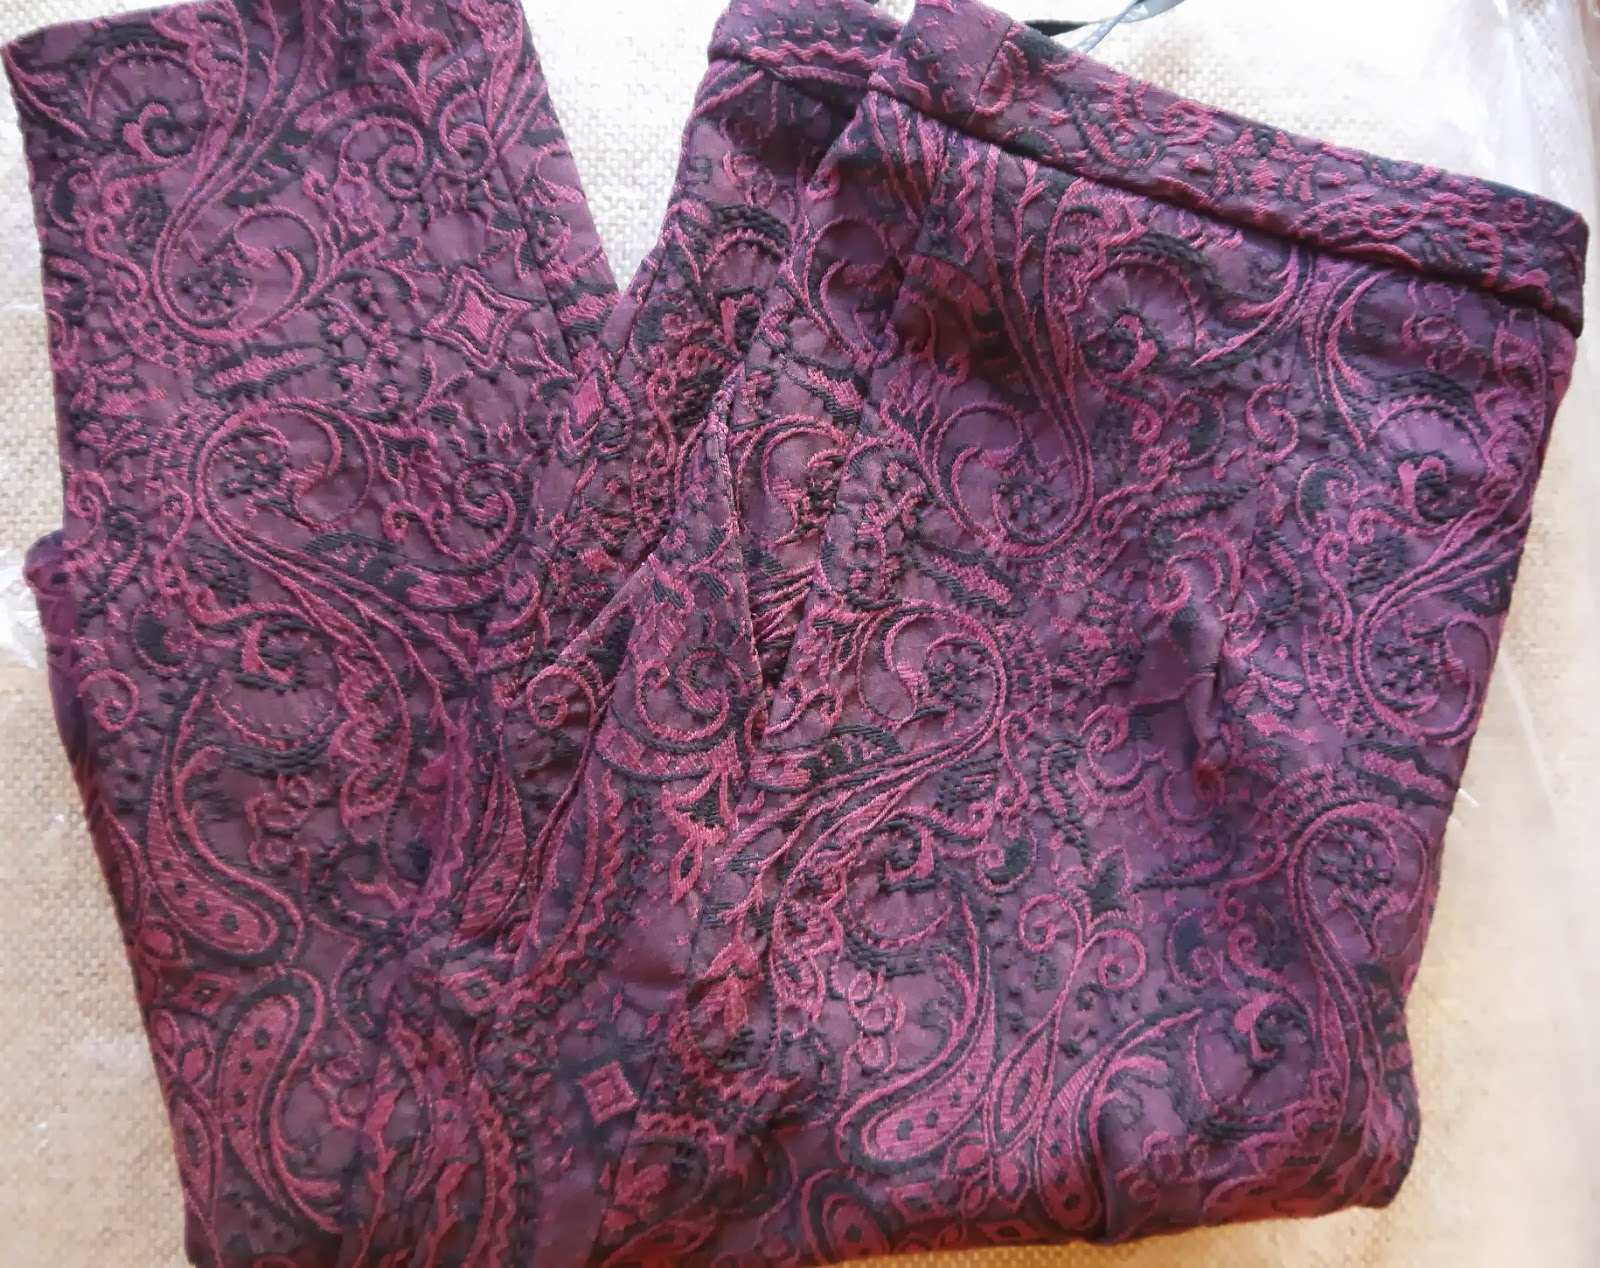 Paisley Print Trousers from Primark